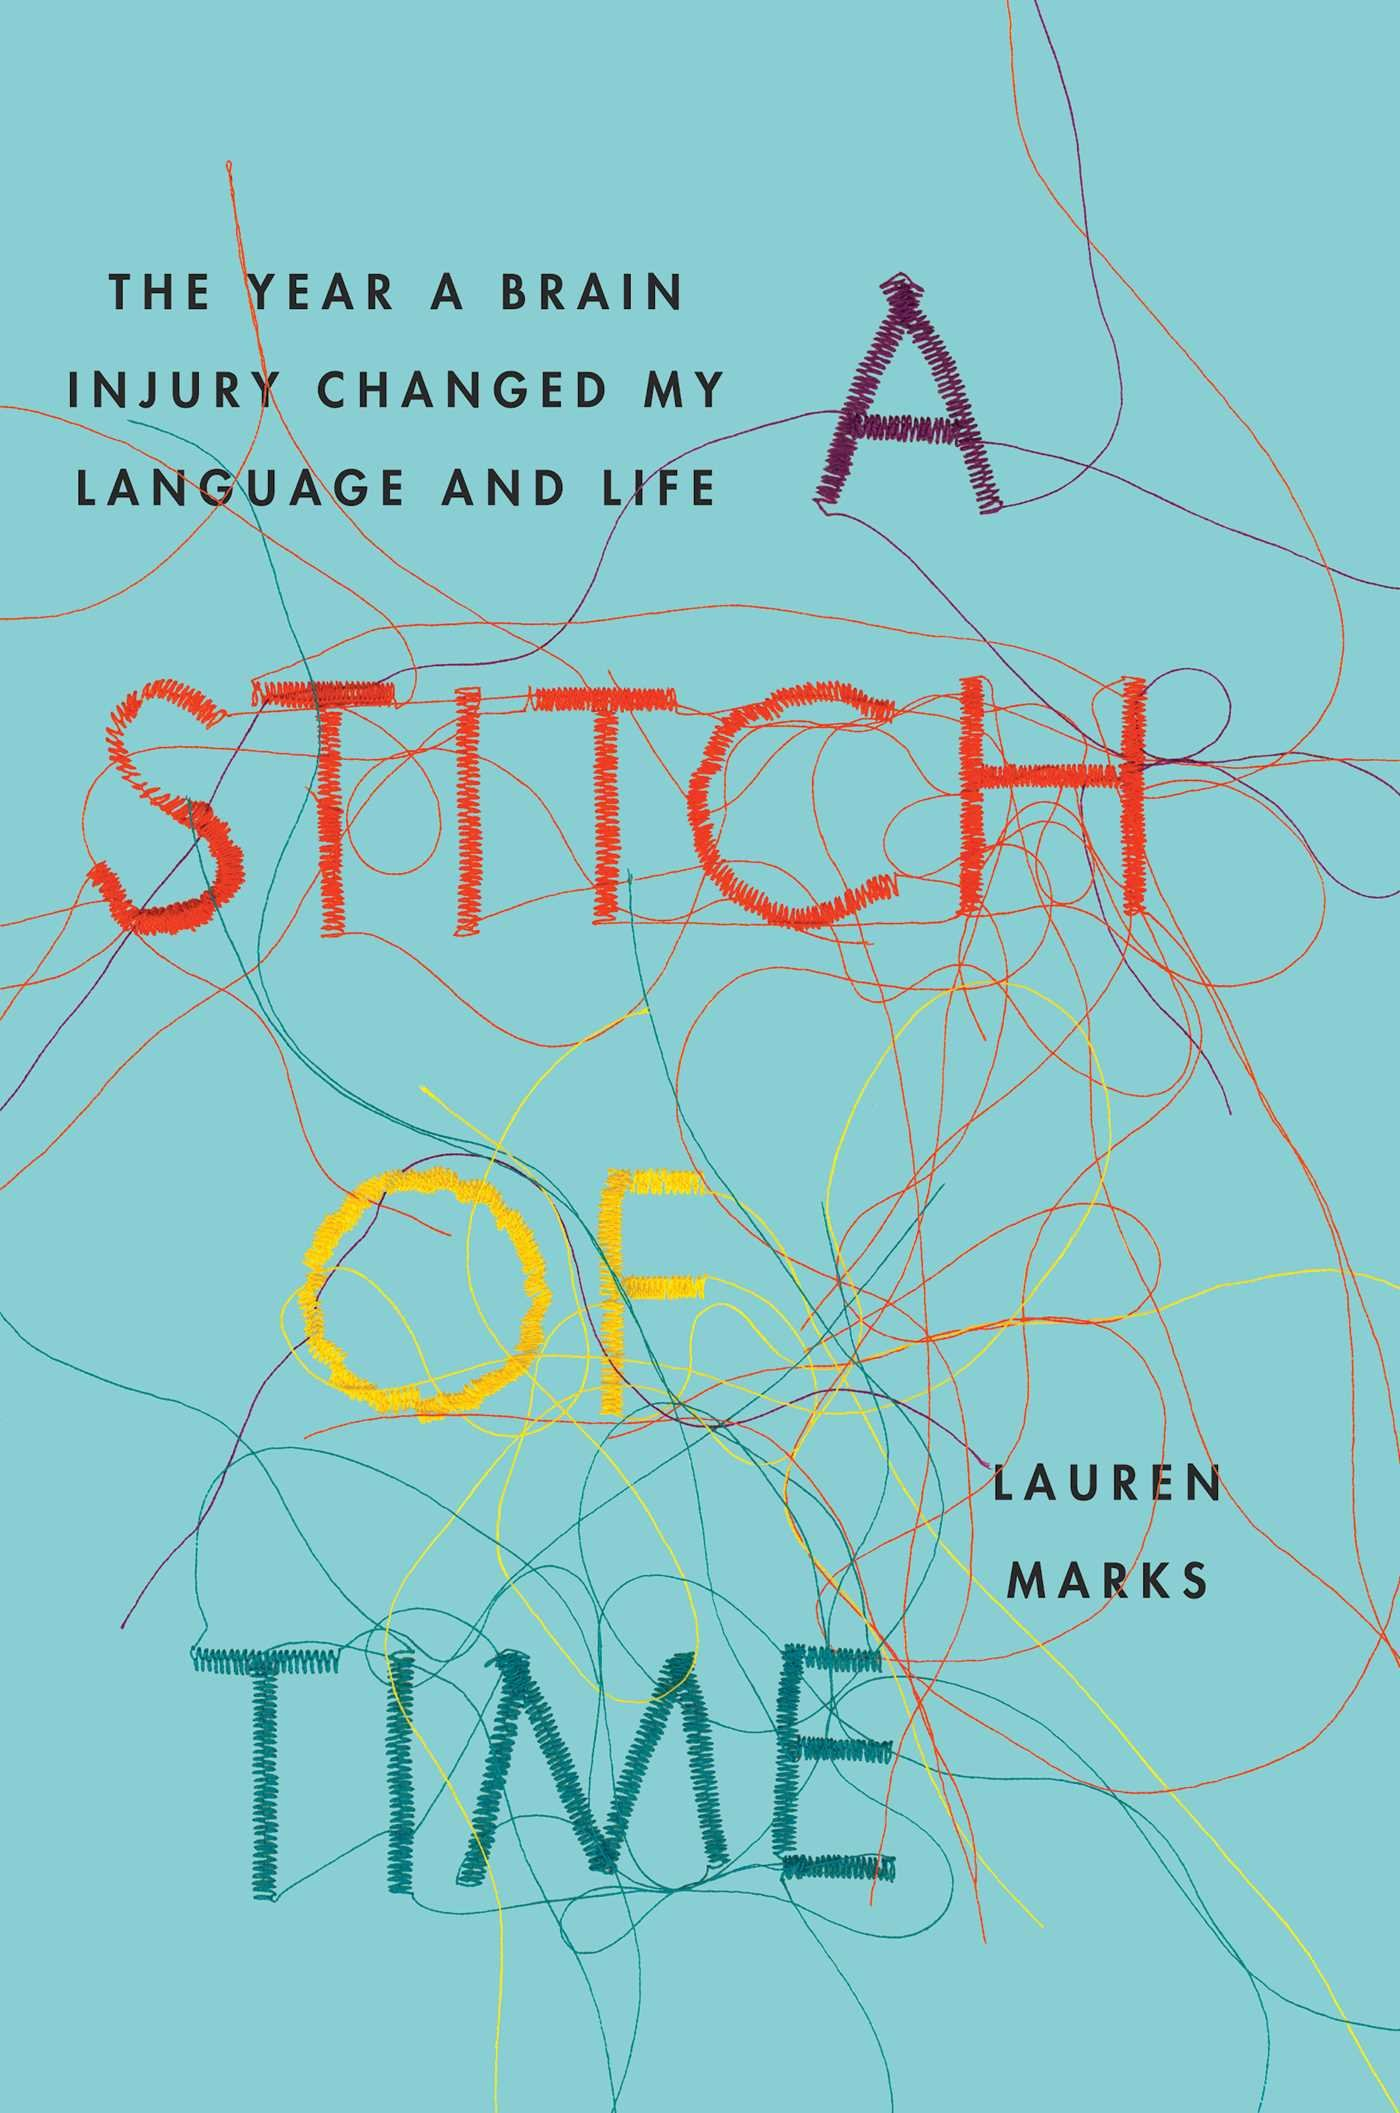 A Stitch of Time: The Year a Brain Injury Changed My Language and Life by SIMON SCHUSTER